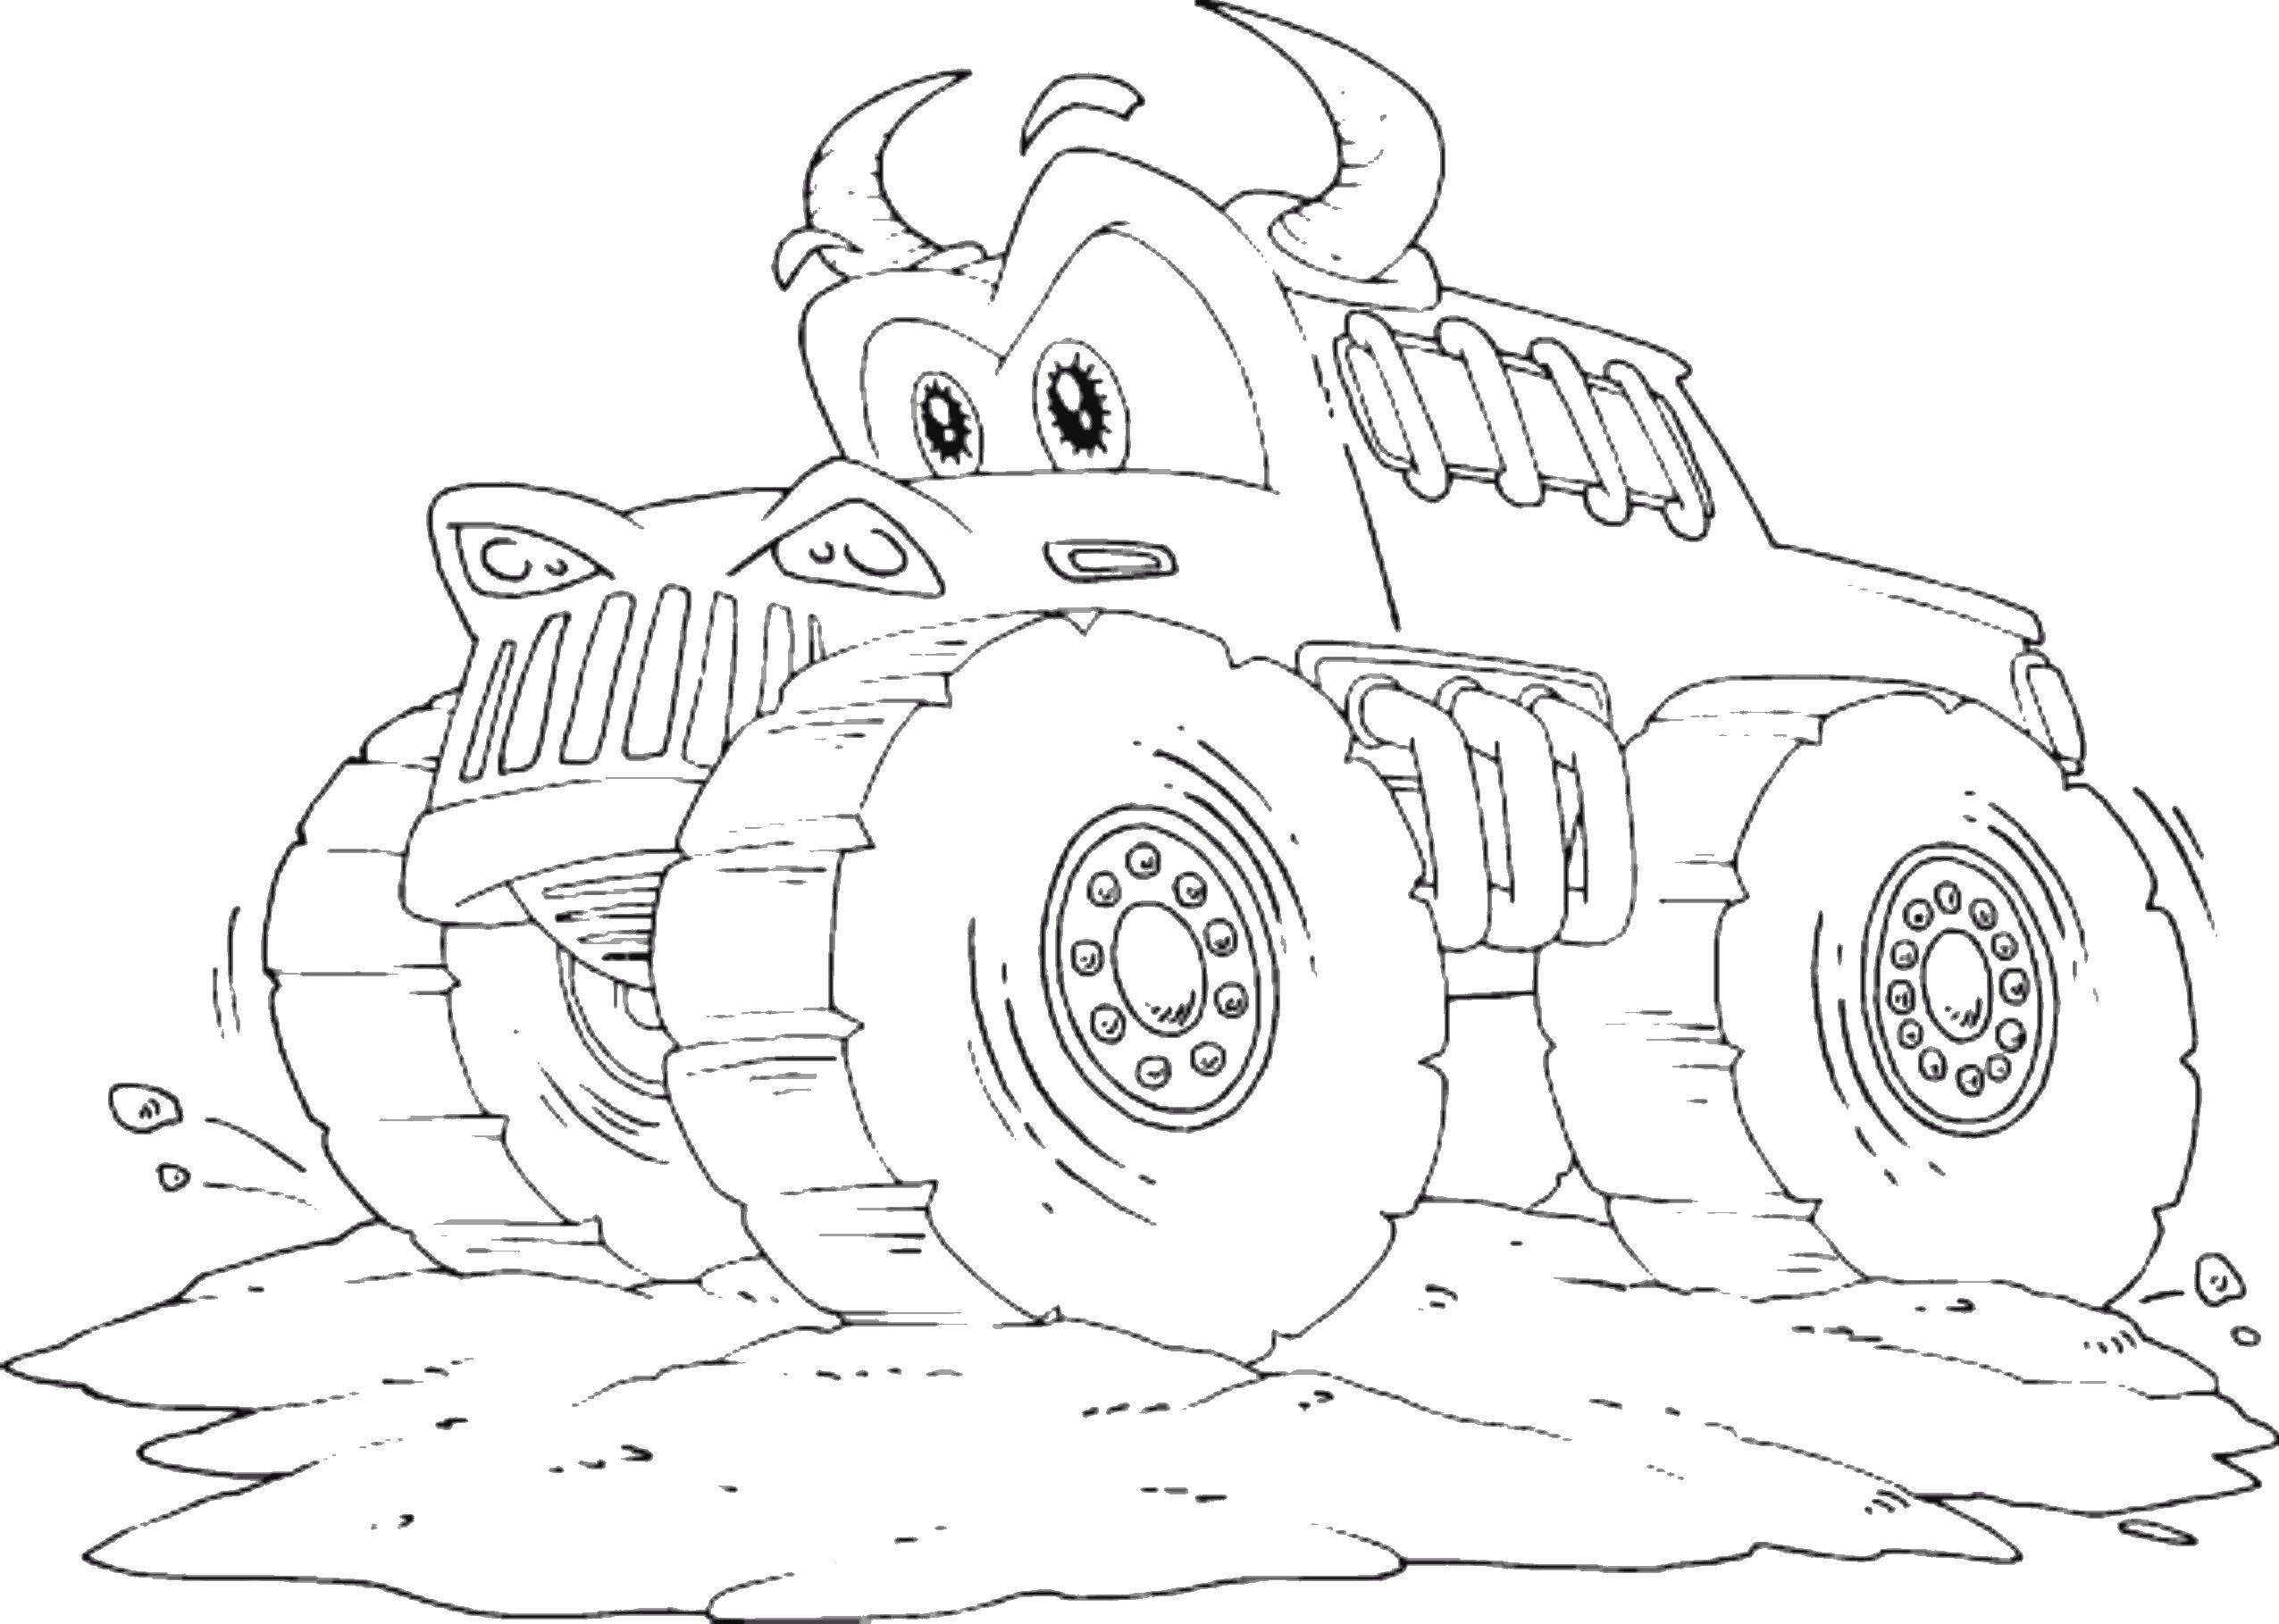 Coloring pages for kids to print - Car coloring page/Big car | 1818x2551